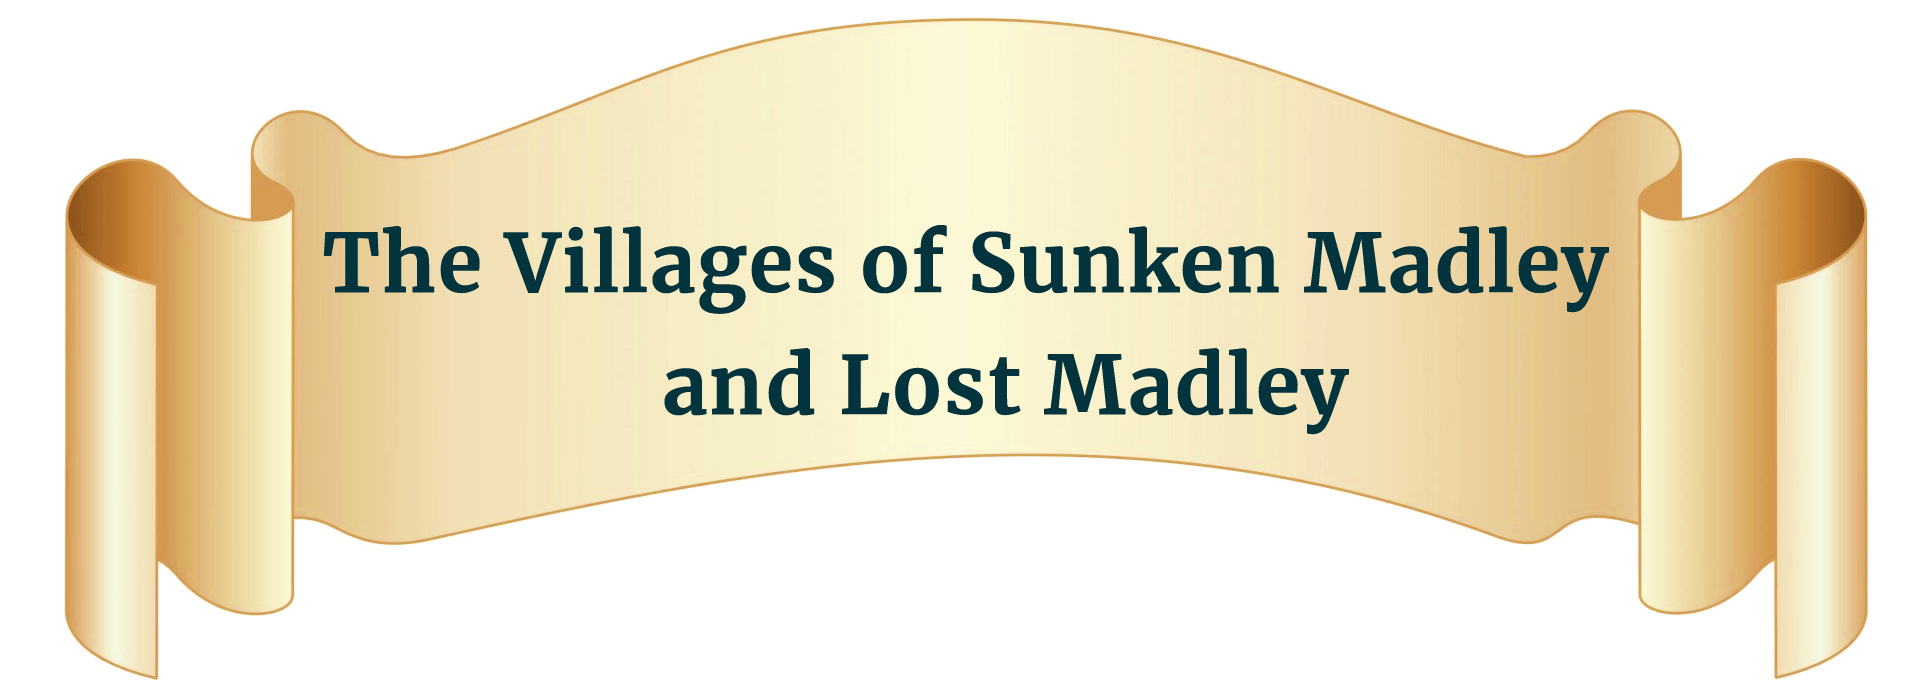 Cream scroll with text: The Village of Sunken Madley and Lost Madley